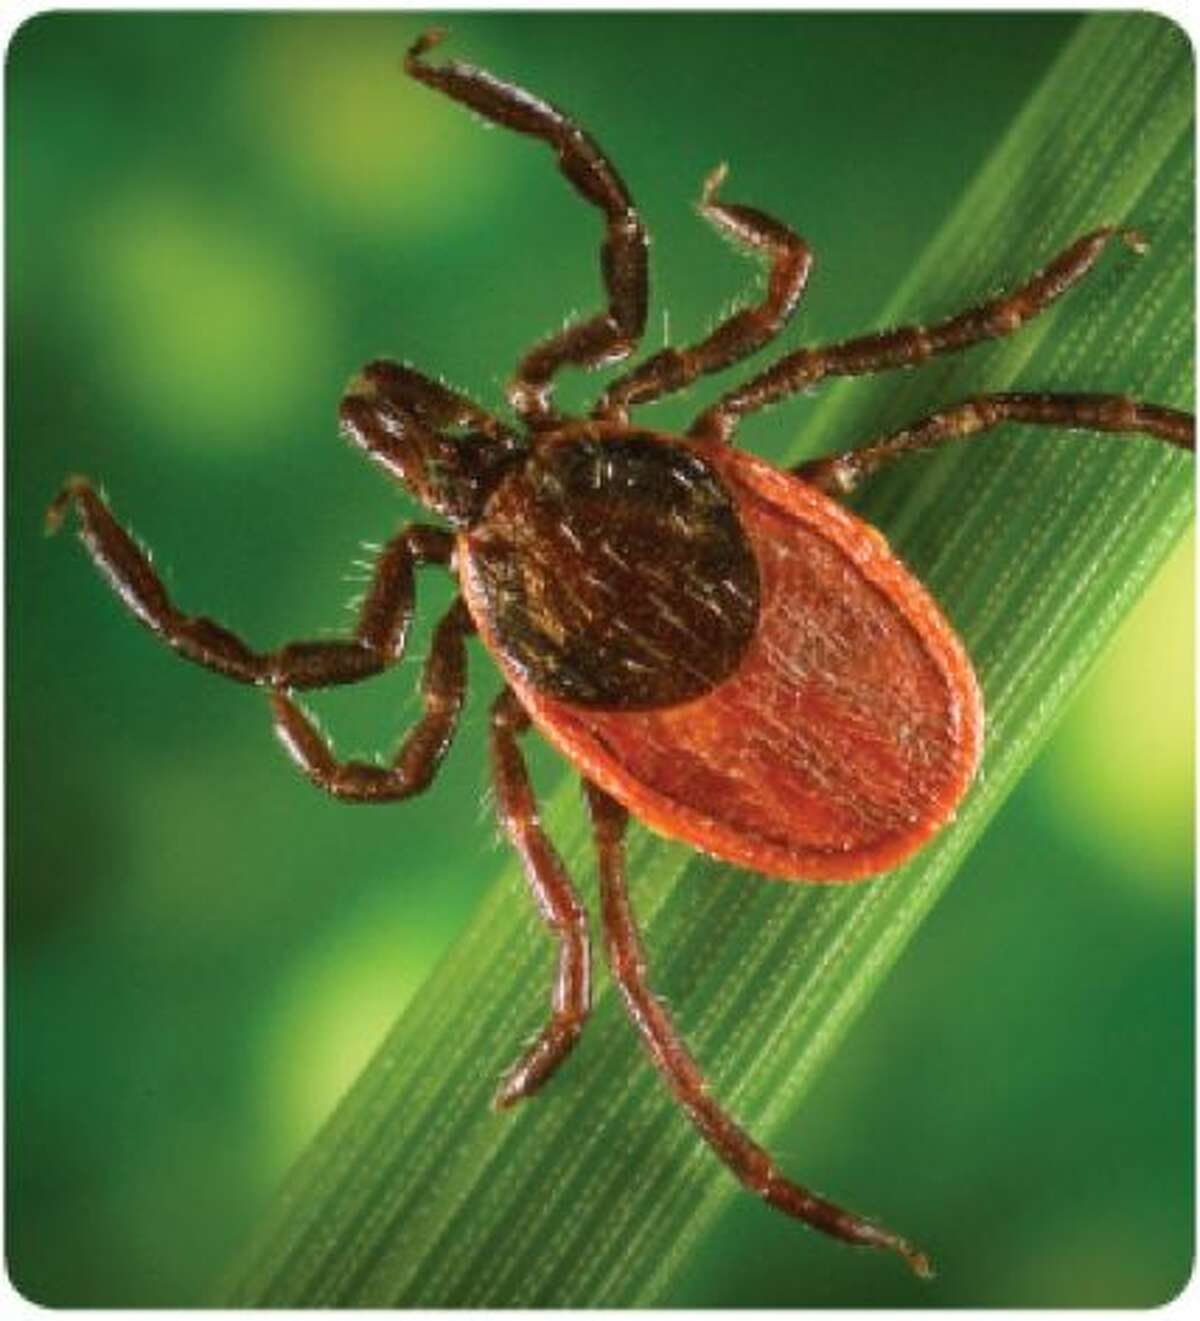 The Western Connecticut Health Network Lyme Disease Data registry recommends residents be vigilant in practicing the following BLAST prevention methods: